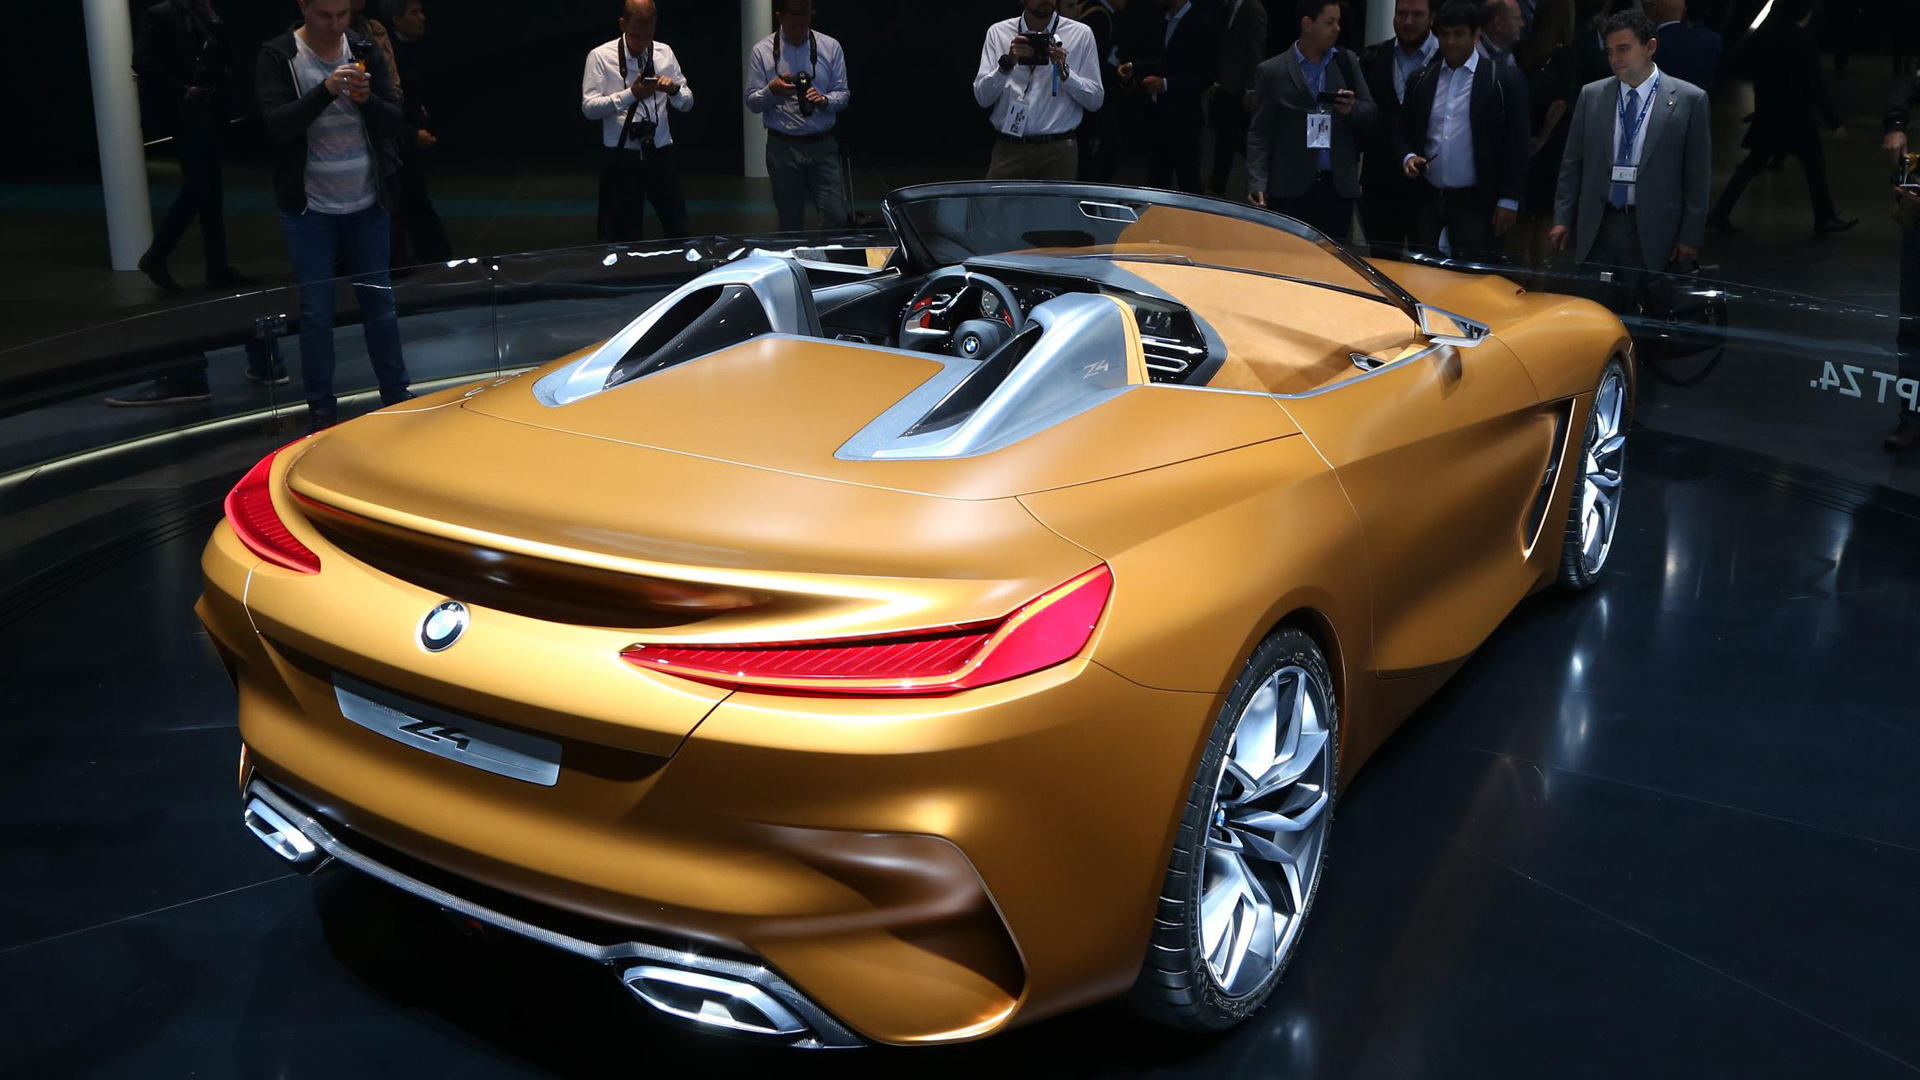 BMW Z4 concept noses the roadster in a sporty new direction